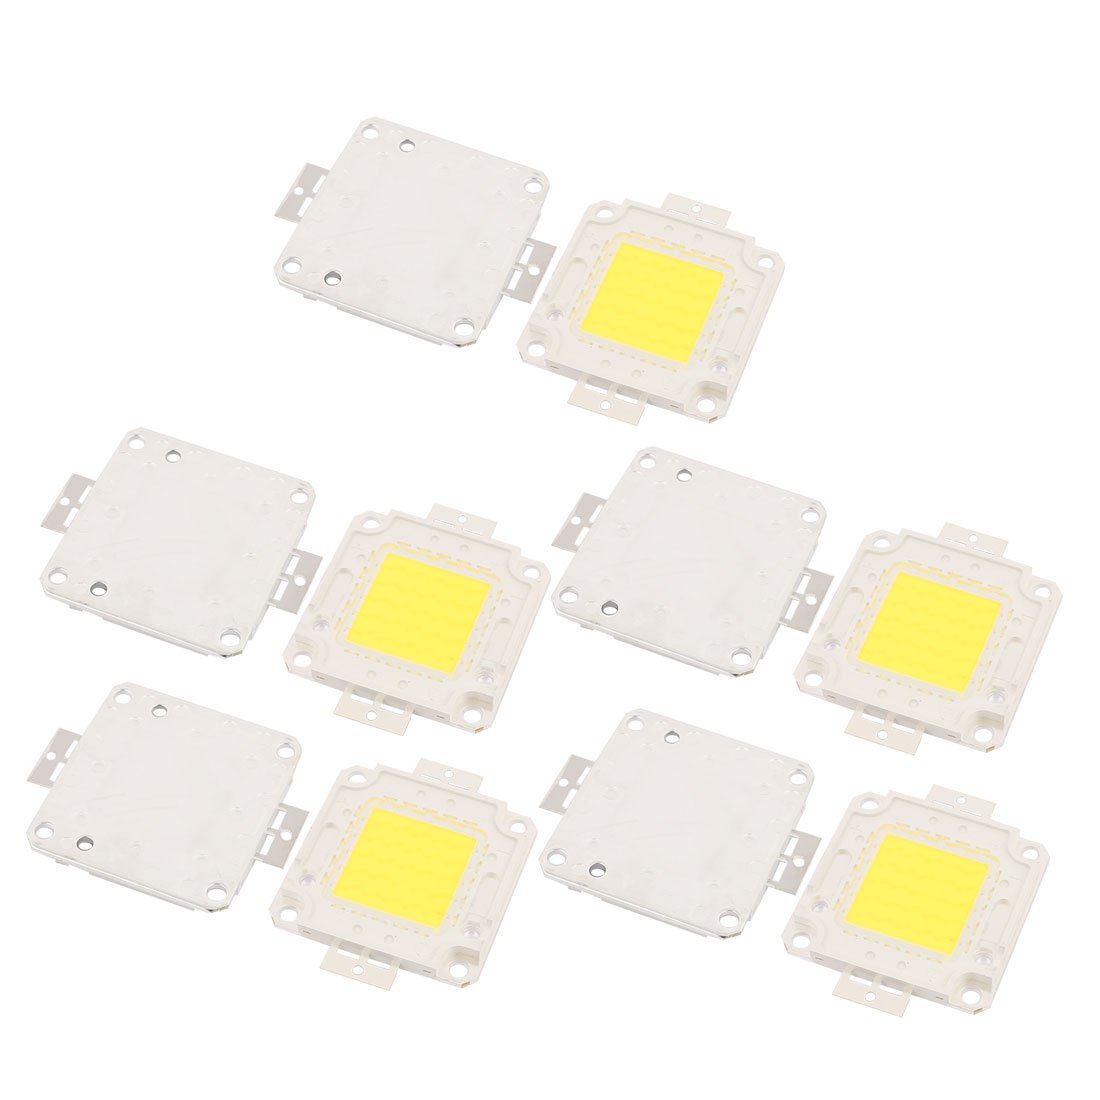 uxcell 1500mA 50W LED Chip Bulb SMD Light Beads Pure White Super Bright High Power for Floodlight 10pcs